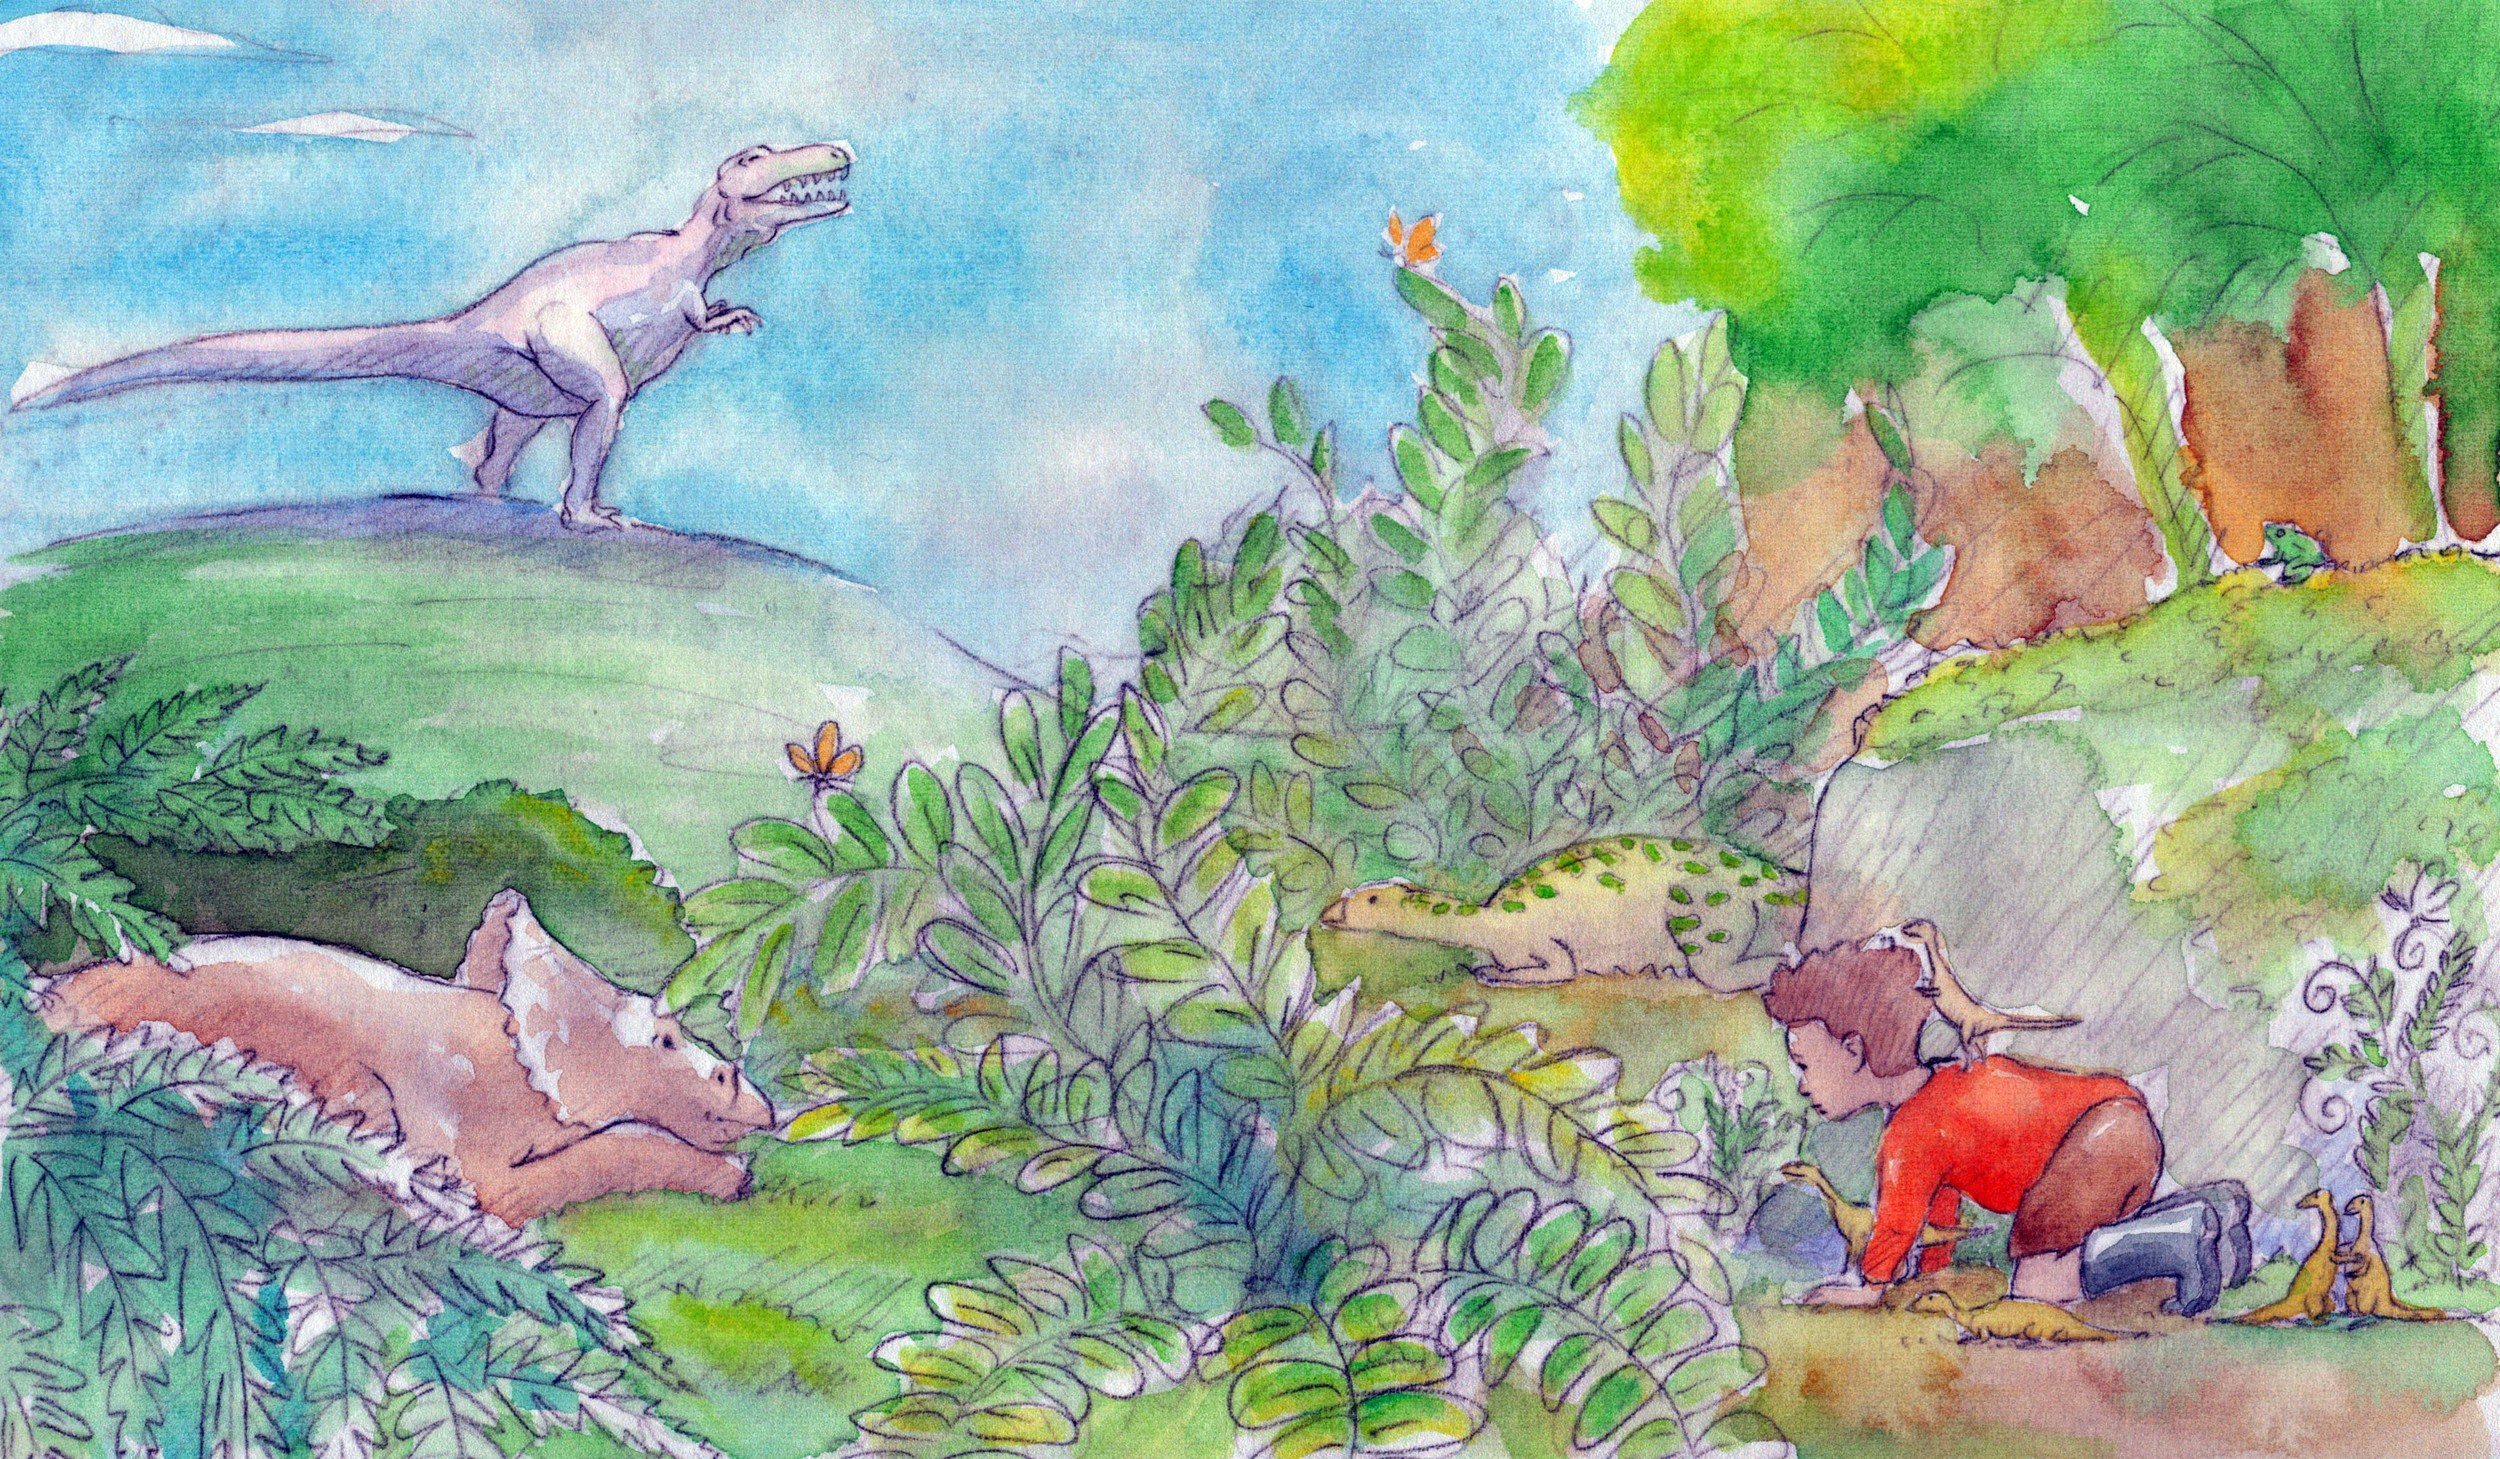 playing with dinosaurs-hiding low res.jpg